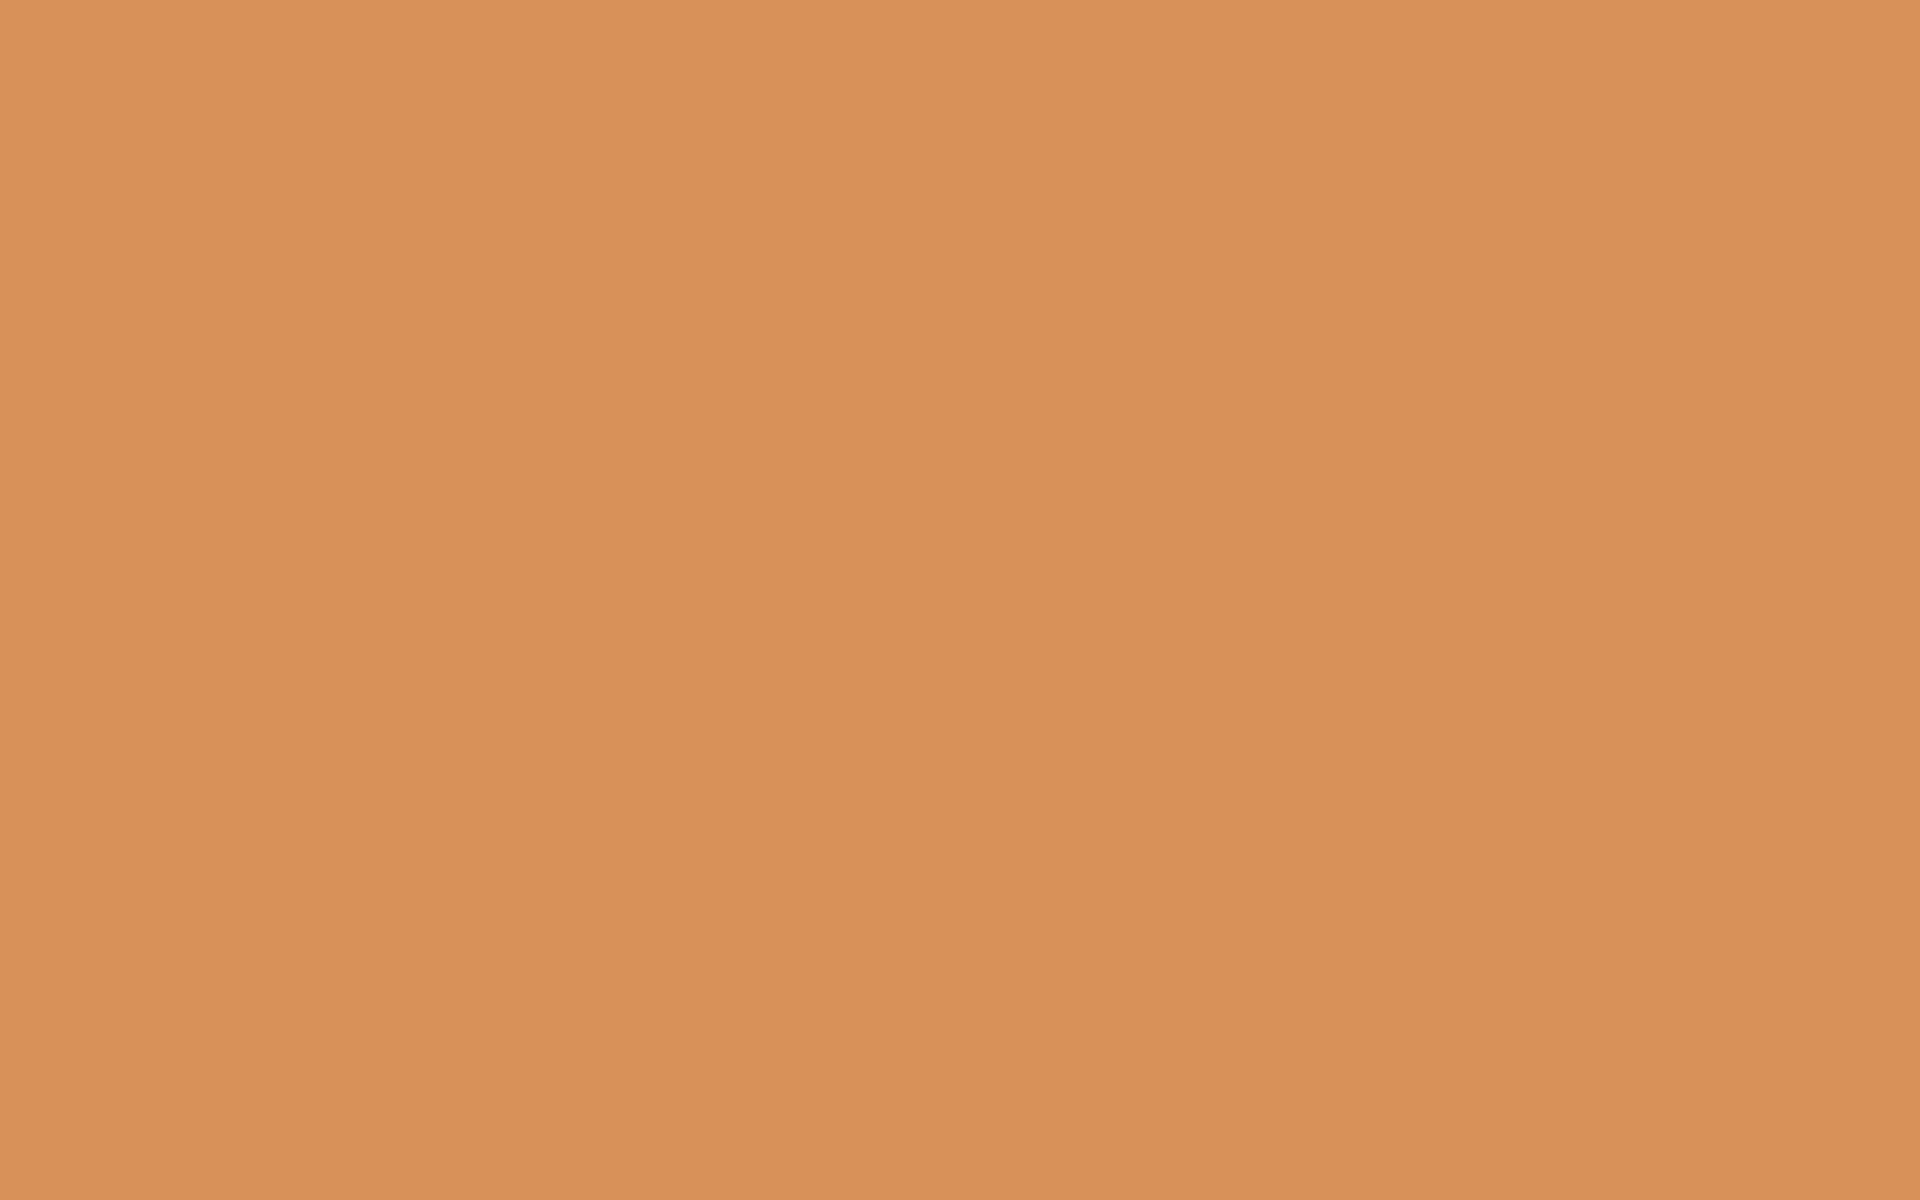 1920x1200 Persian Orange Solid Color Background